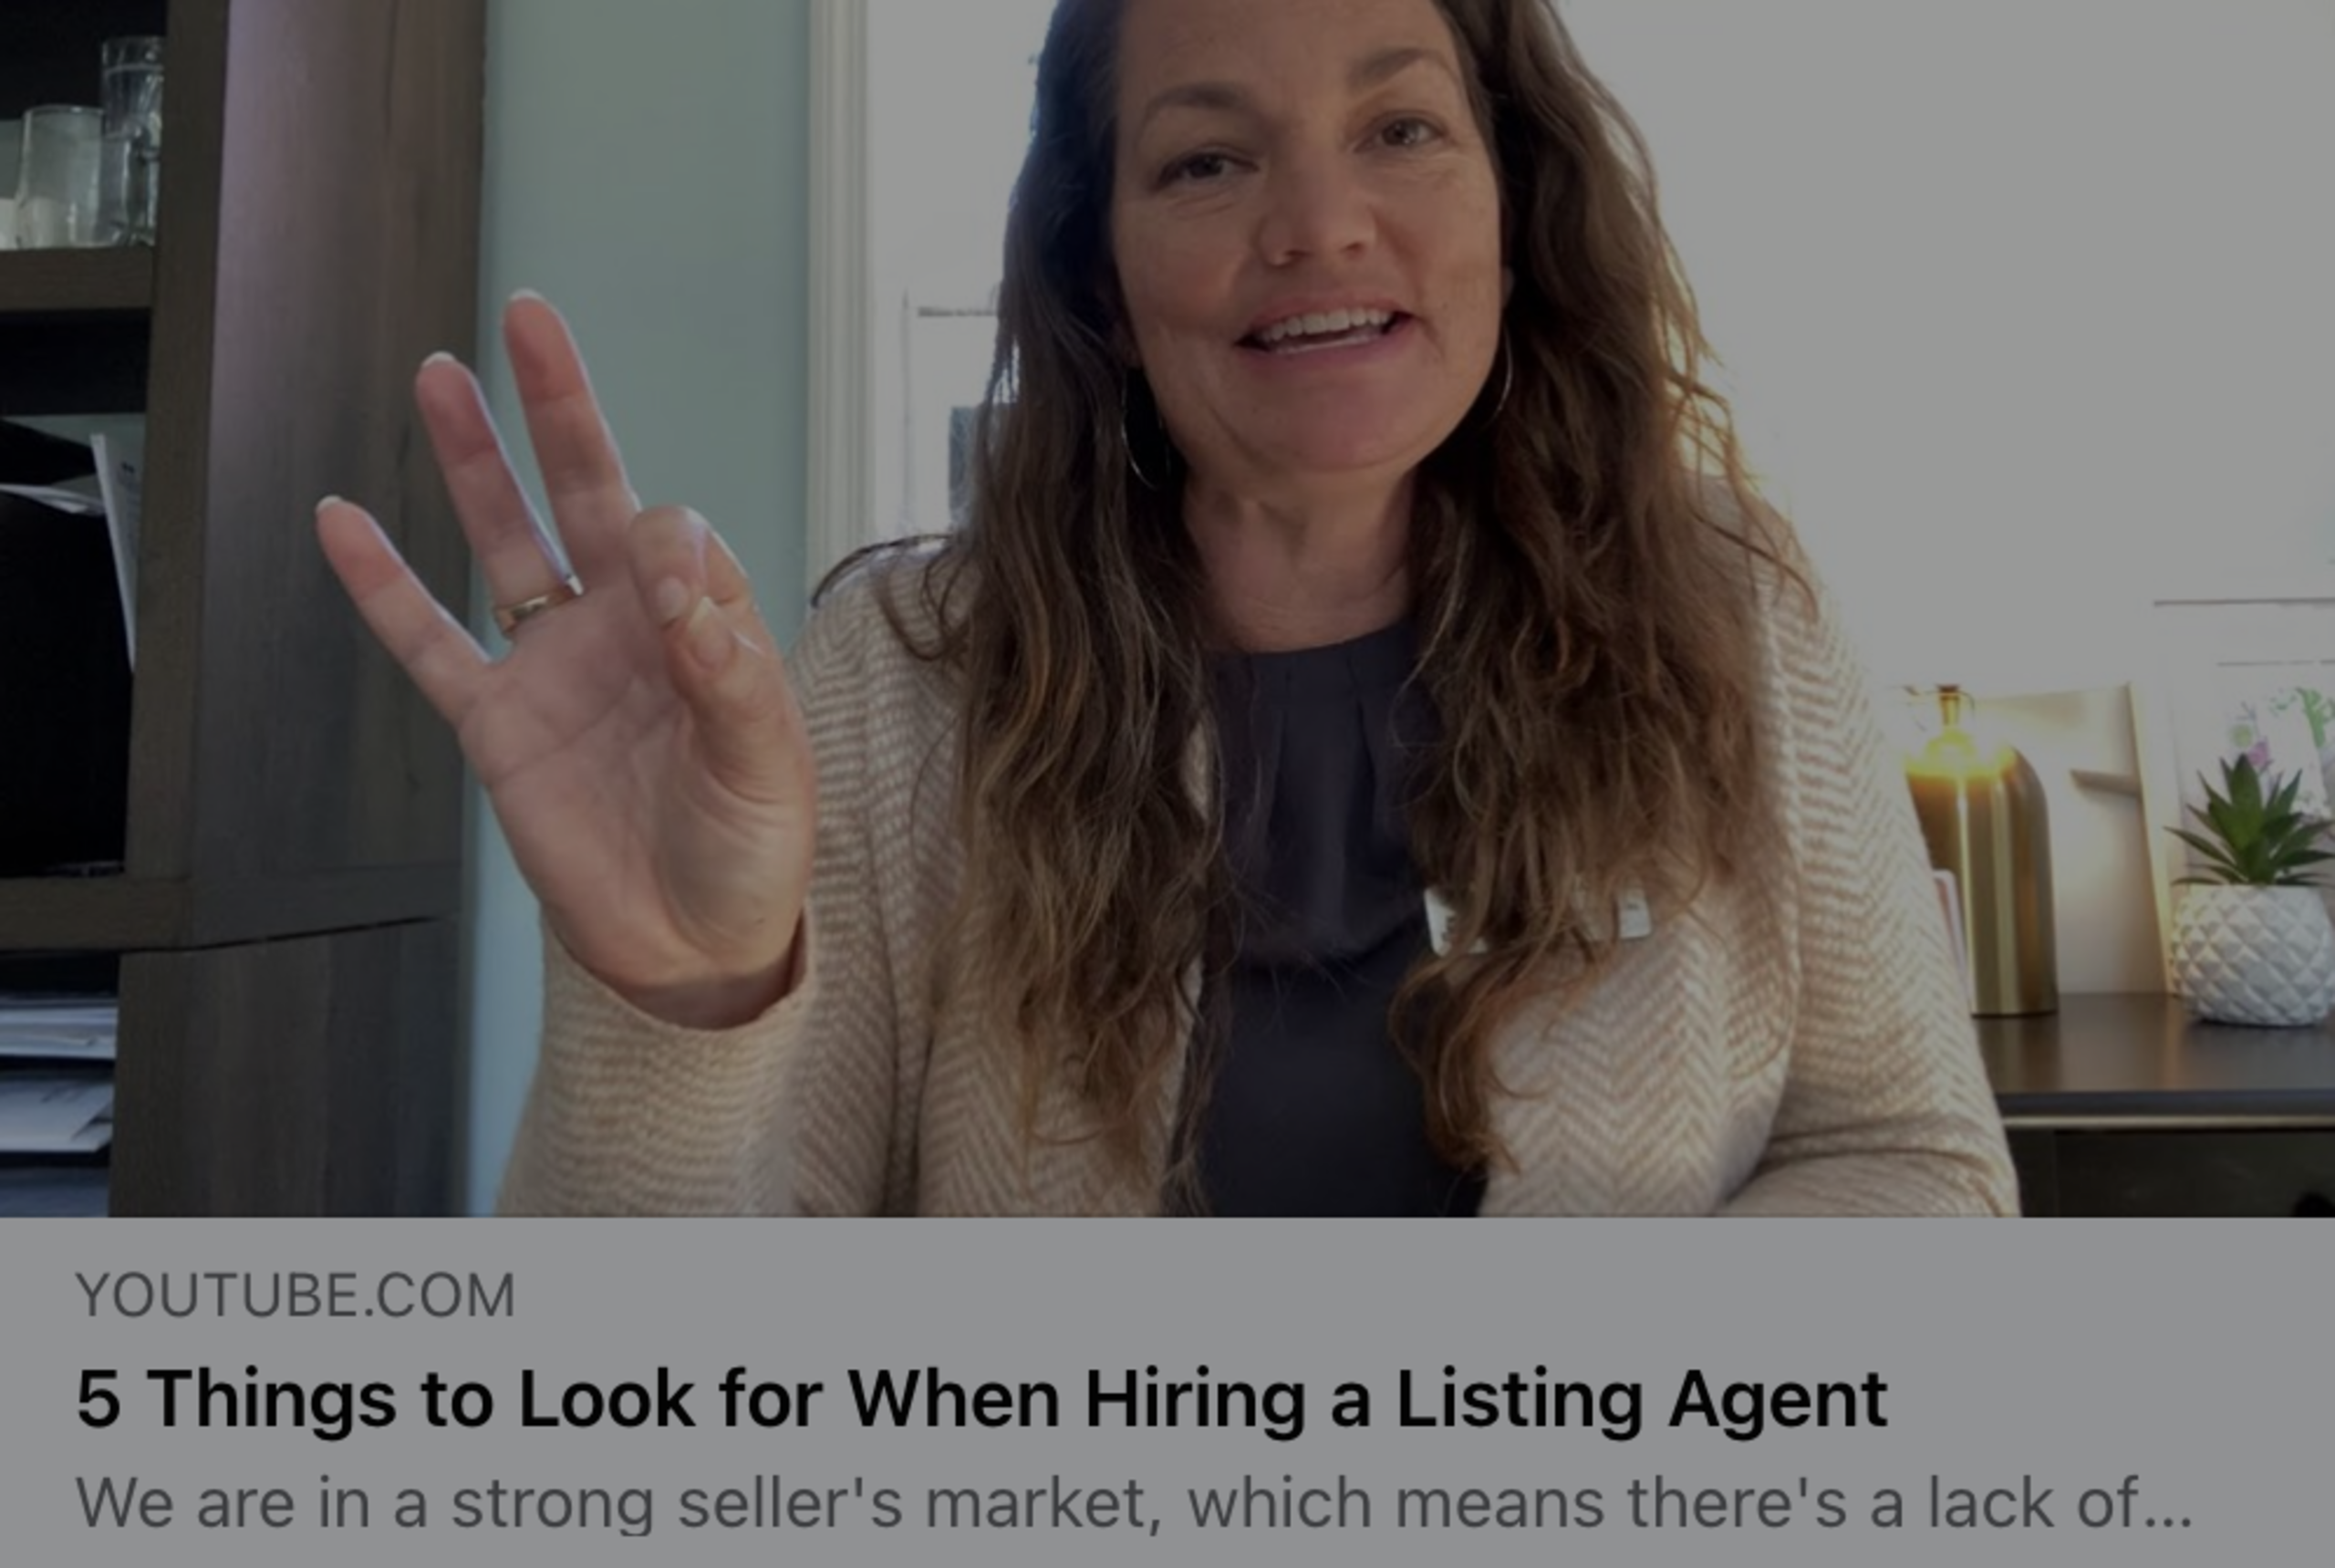 5 Things You Should Look for in a Listing Agent